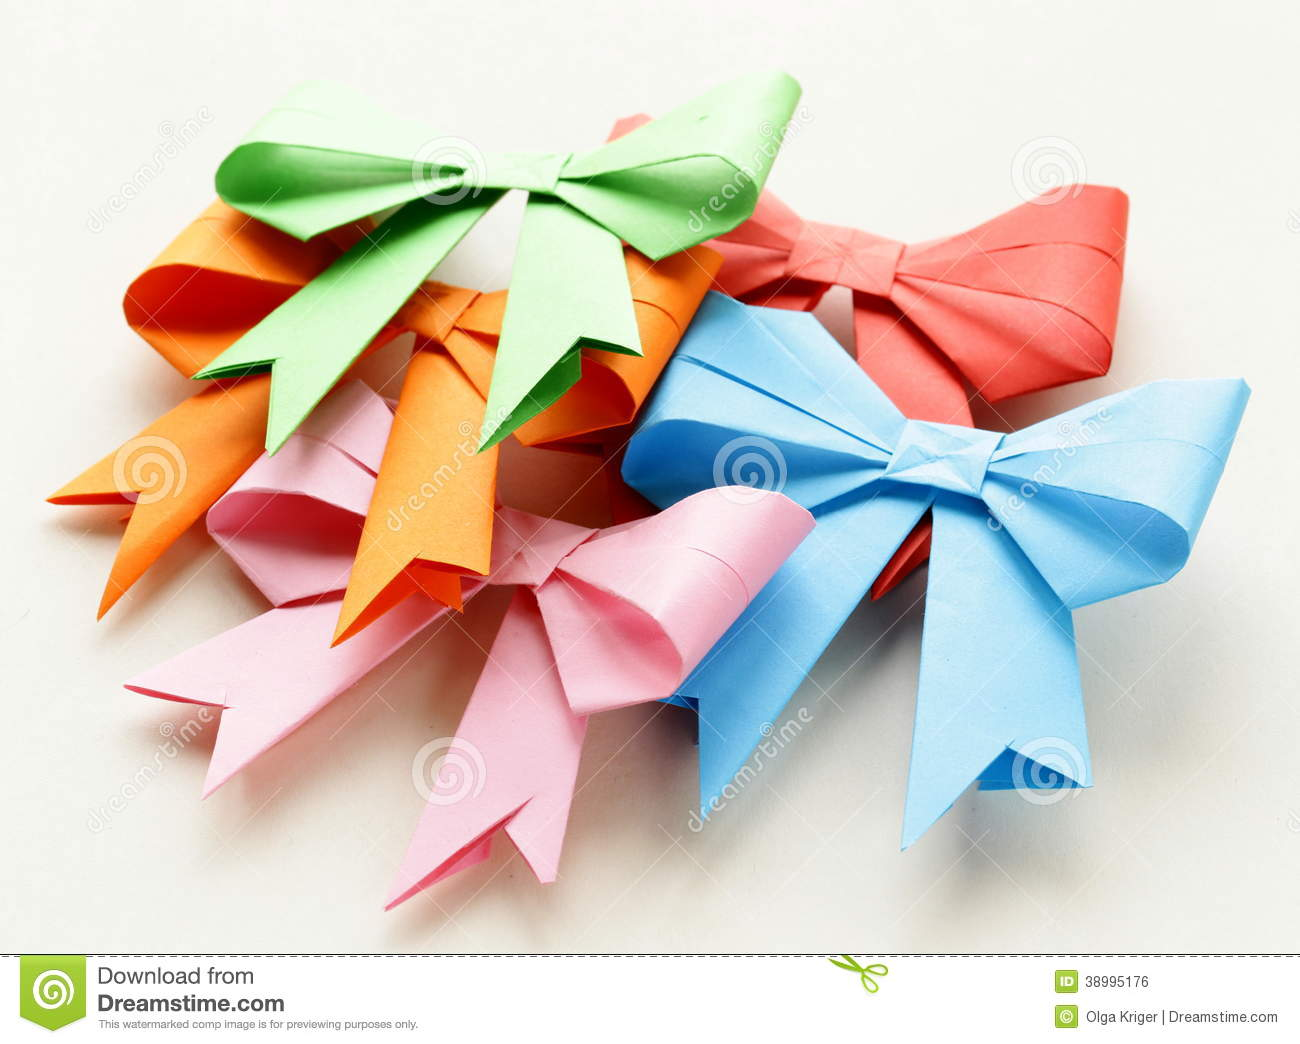 Colored Paper Origami Bows For Holiday Stock Photo Image Of Pink